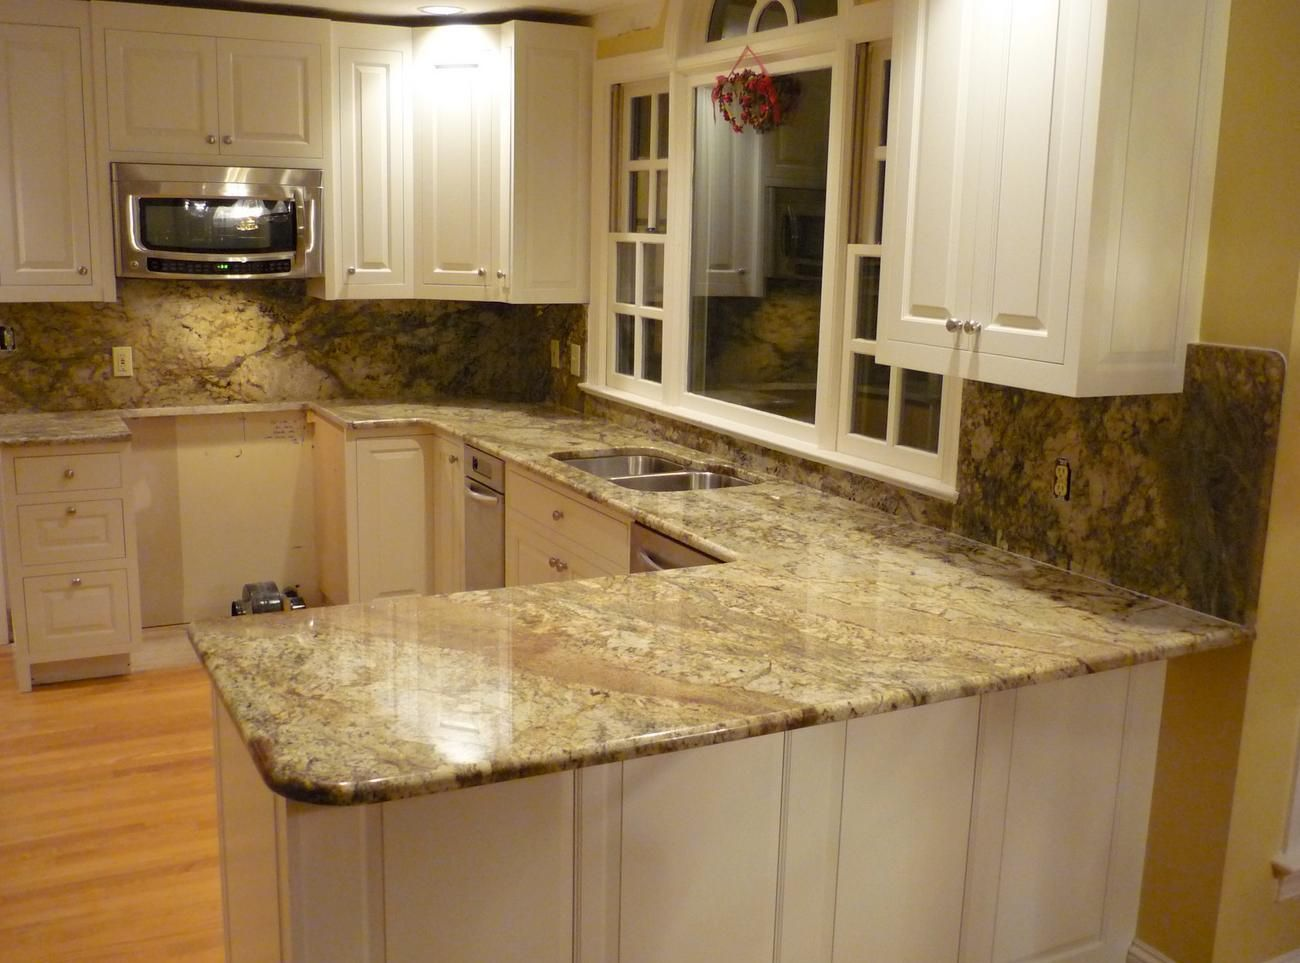 Laminate Countertops And Backsplash Ideas Part - 19: Laminate Countertops That Look Like Granite | Cooking, Setting Up The  Table, Washing Dishes